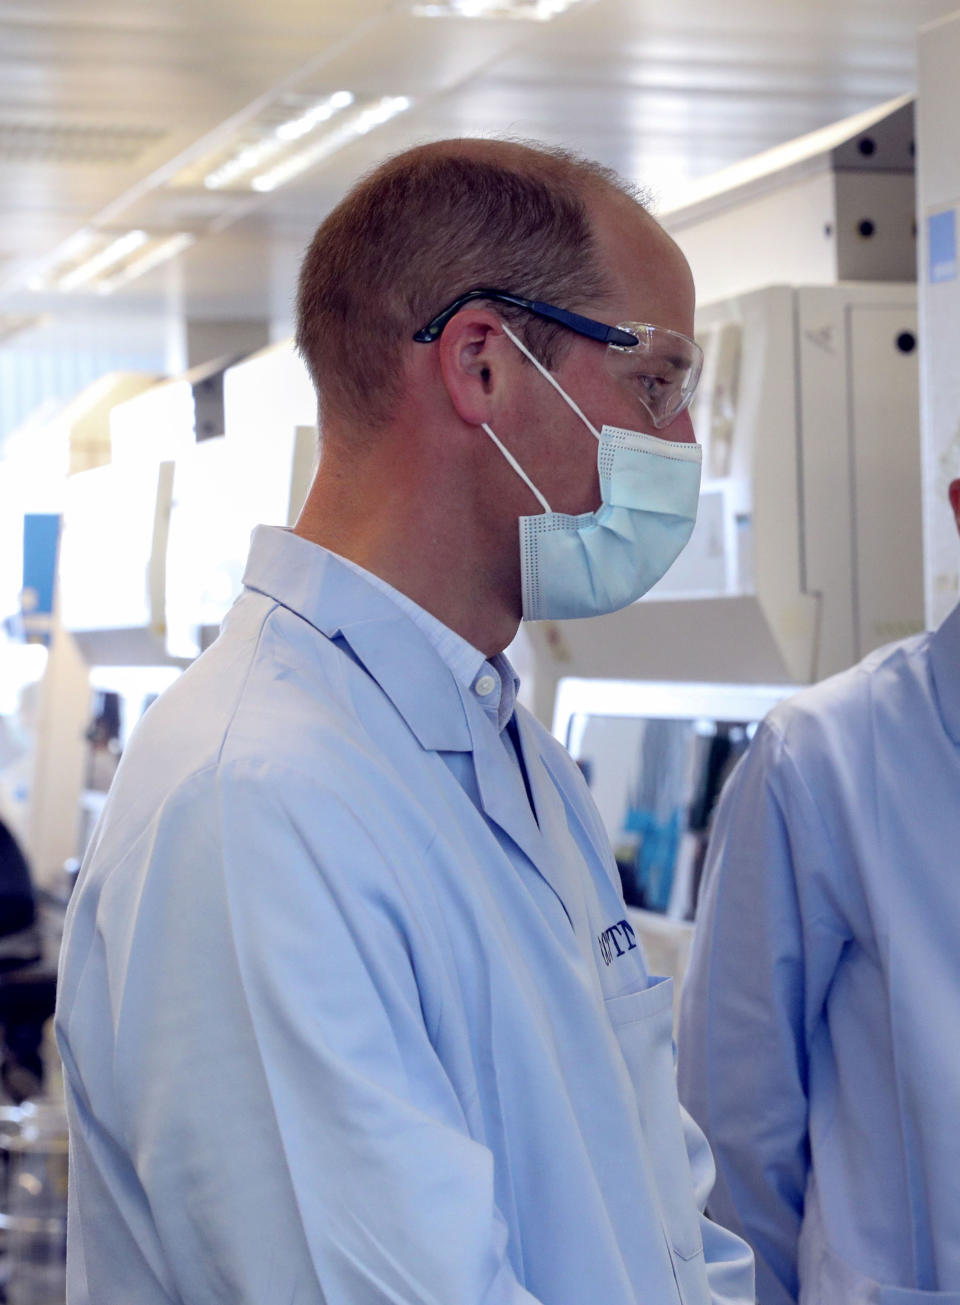 EMBARGOED: not for publication before 2200 BST Wednesday June 24, 2020. The Duke of Cambridge wears a mask during a visit to the manufacturing laboratory where a vaccine against COVID-19 has been produced at the Oxford Vaccine Group's facility at the Churchill Hospital in Oxford.